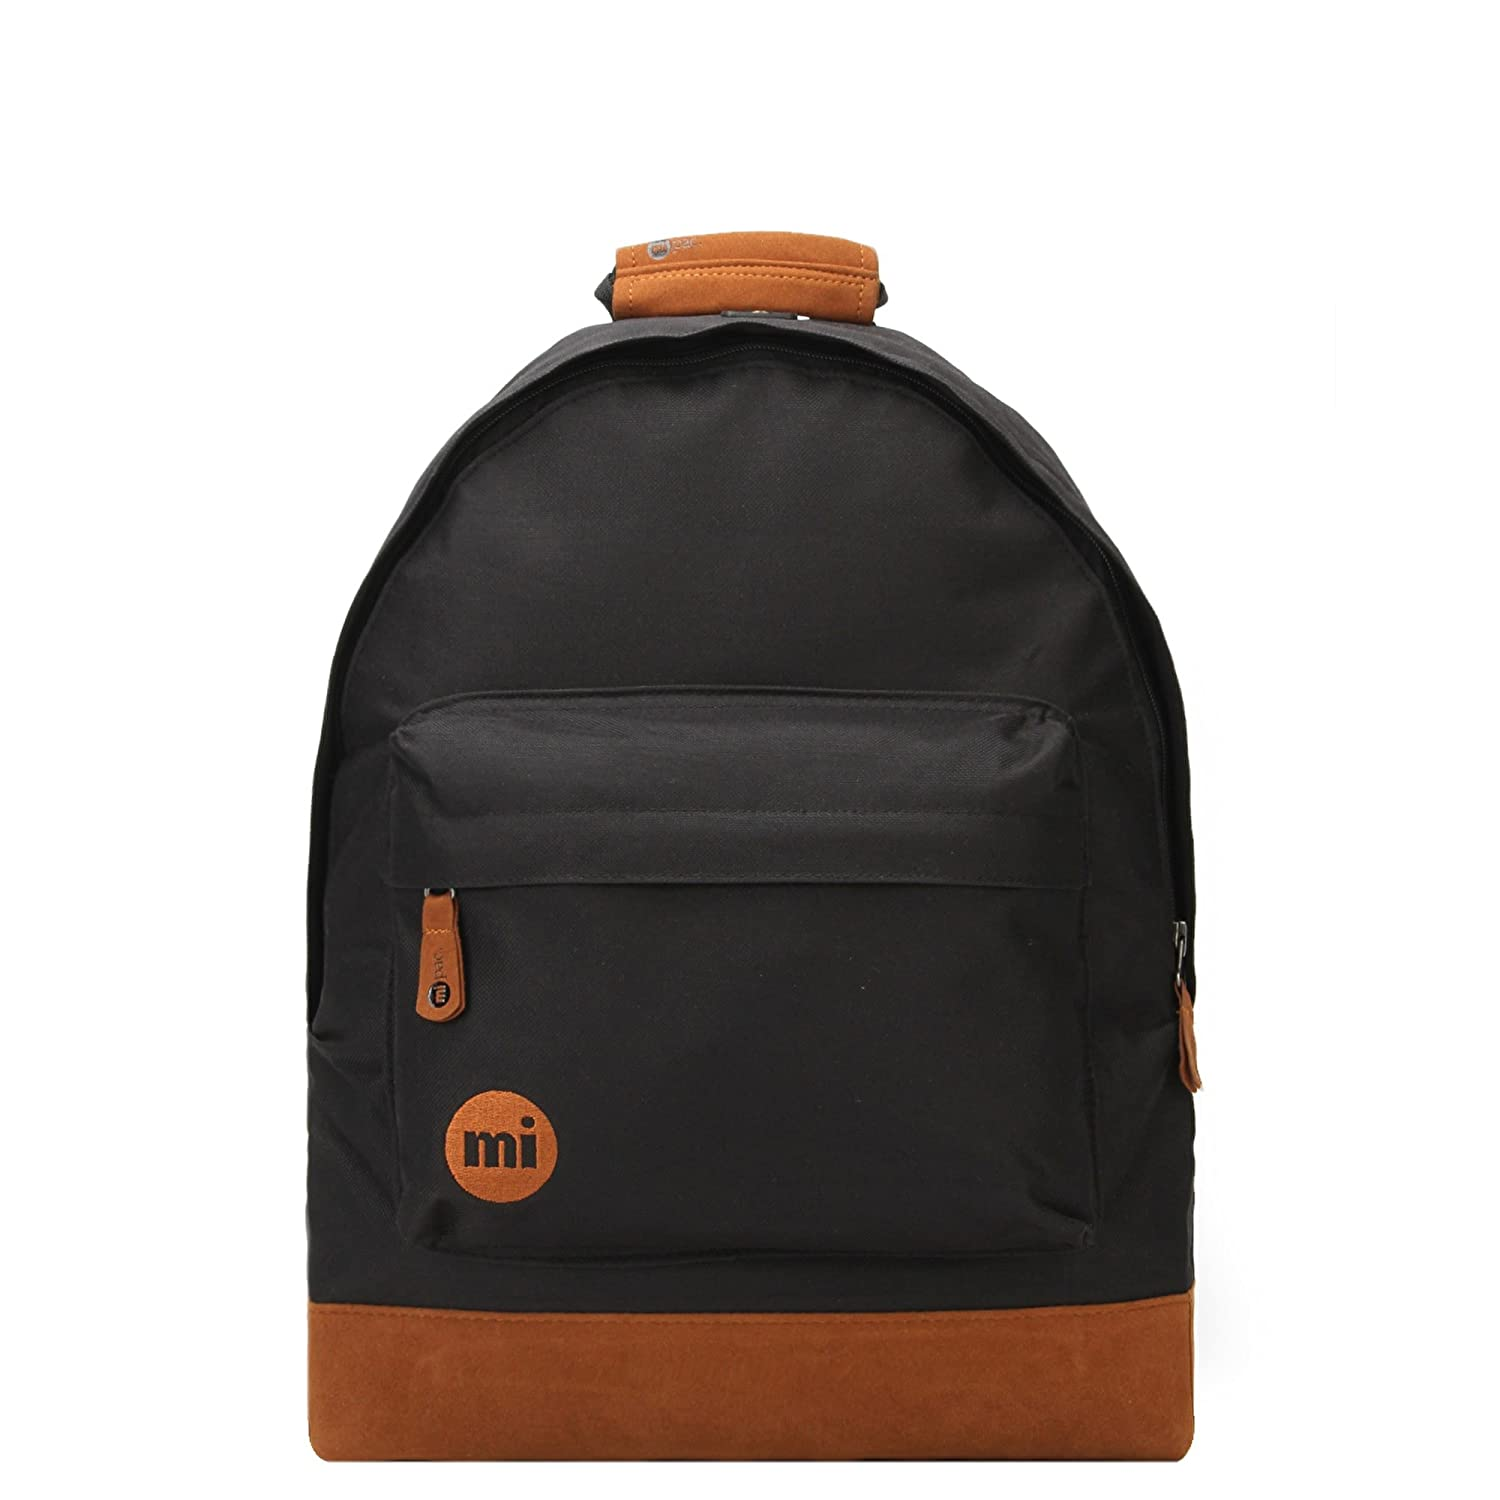 a1fd9ae2577 Mi-Pac Classic Backpack | Water Resistant Rucksack | Black: Amazon.co.uk:  Luggage